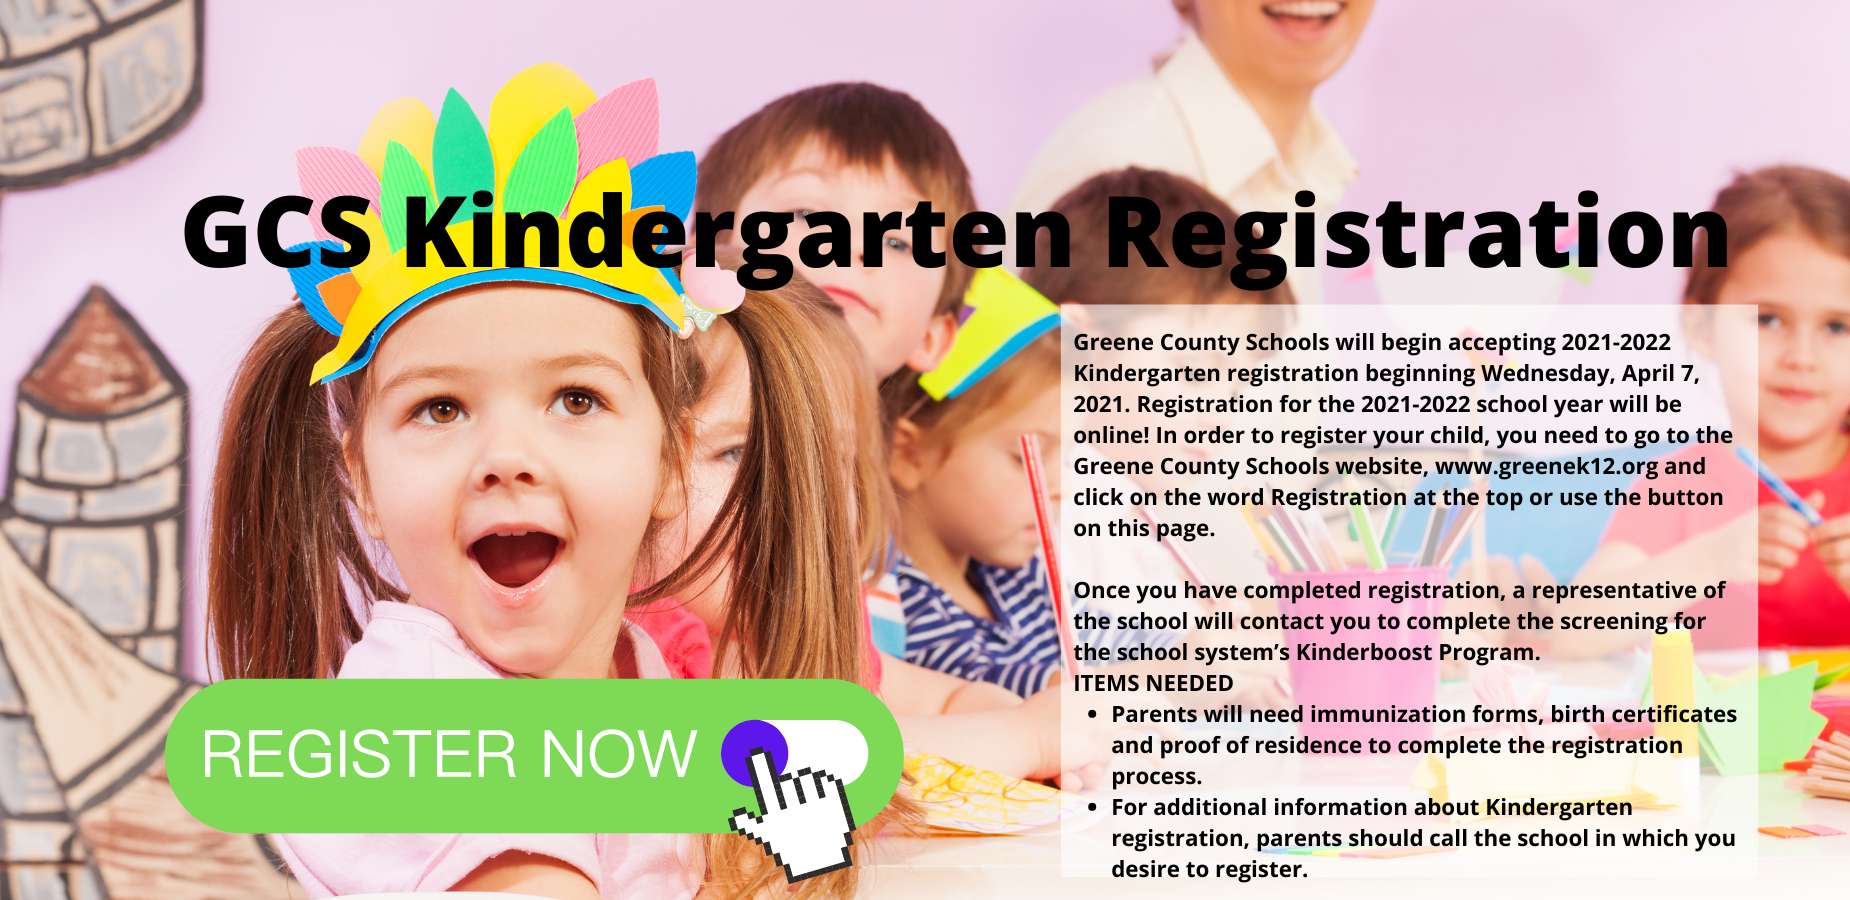 GCS Kindergarten Registration